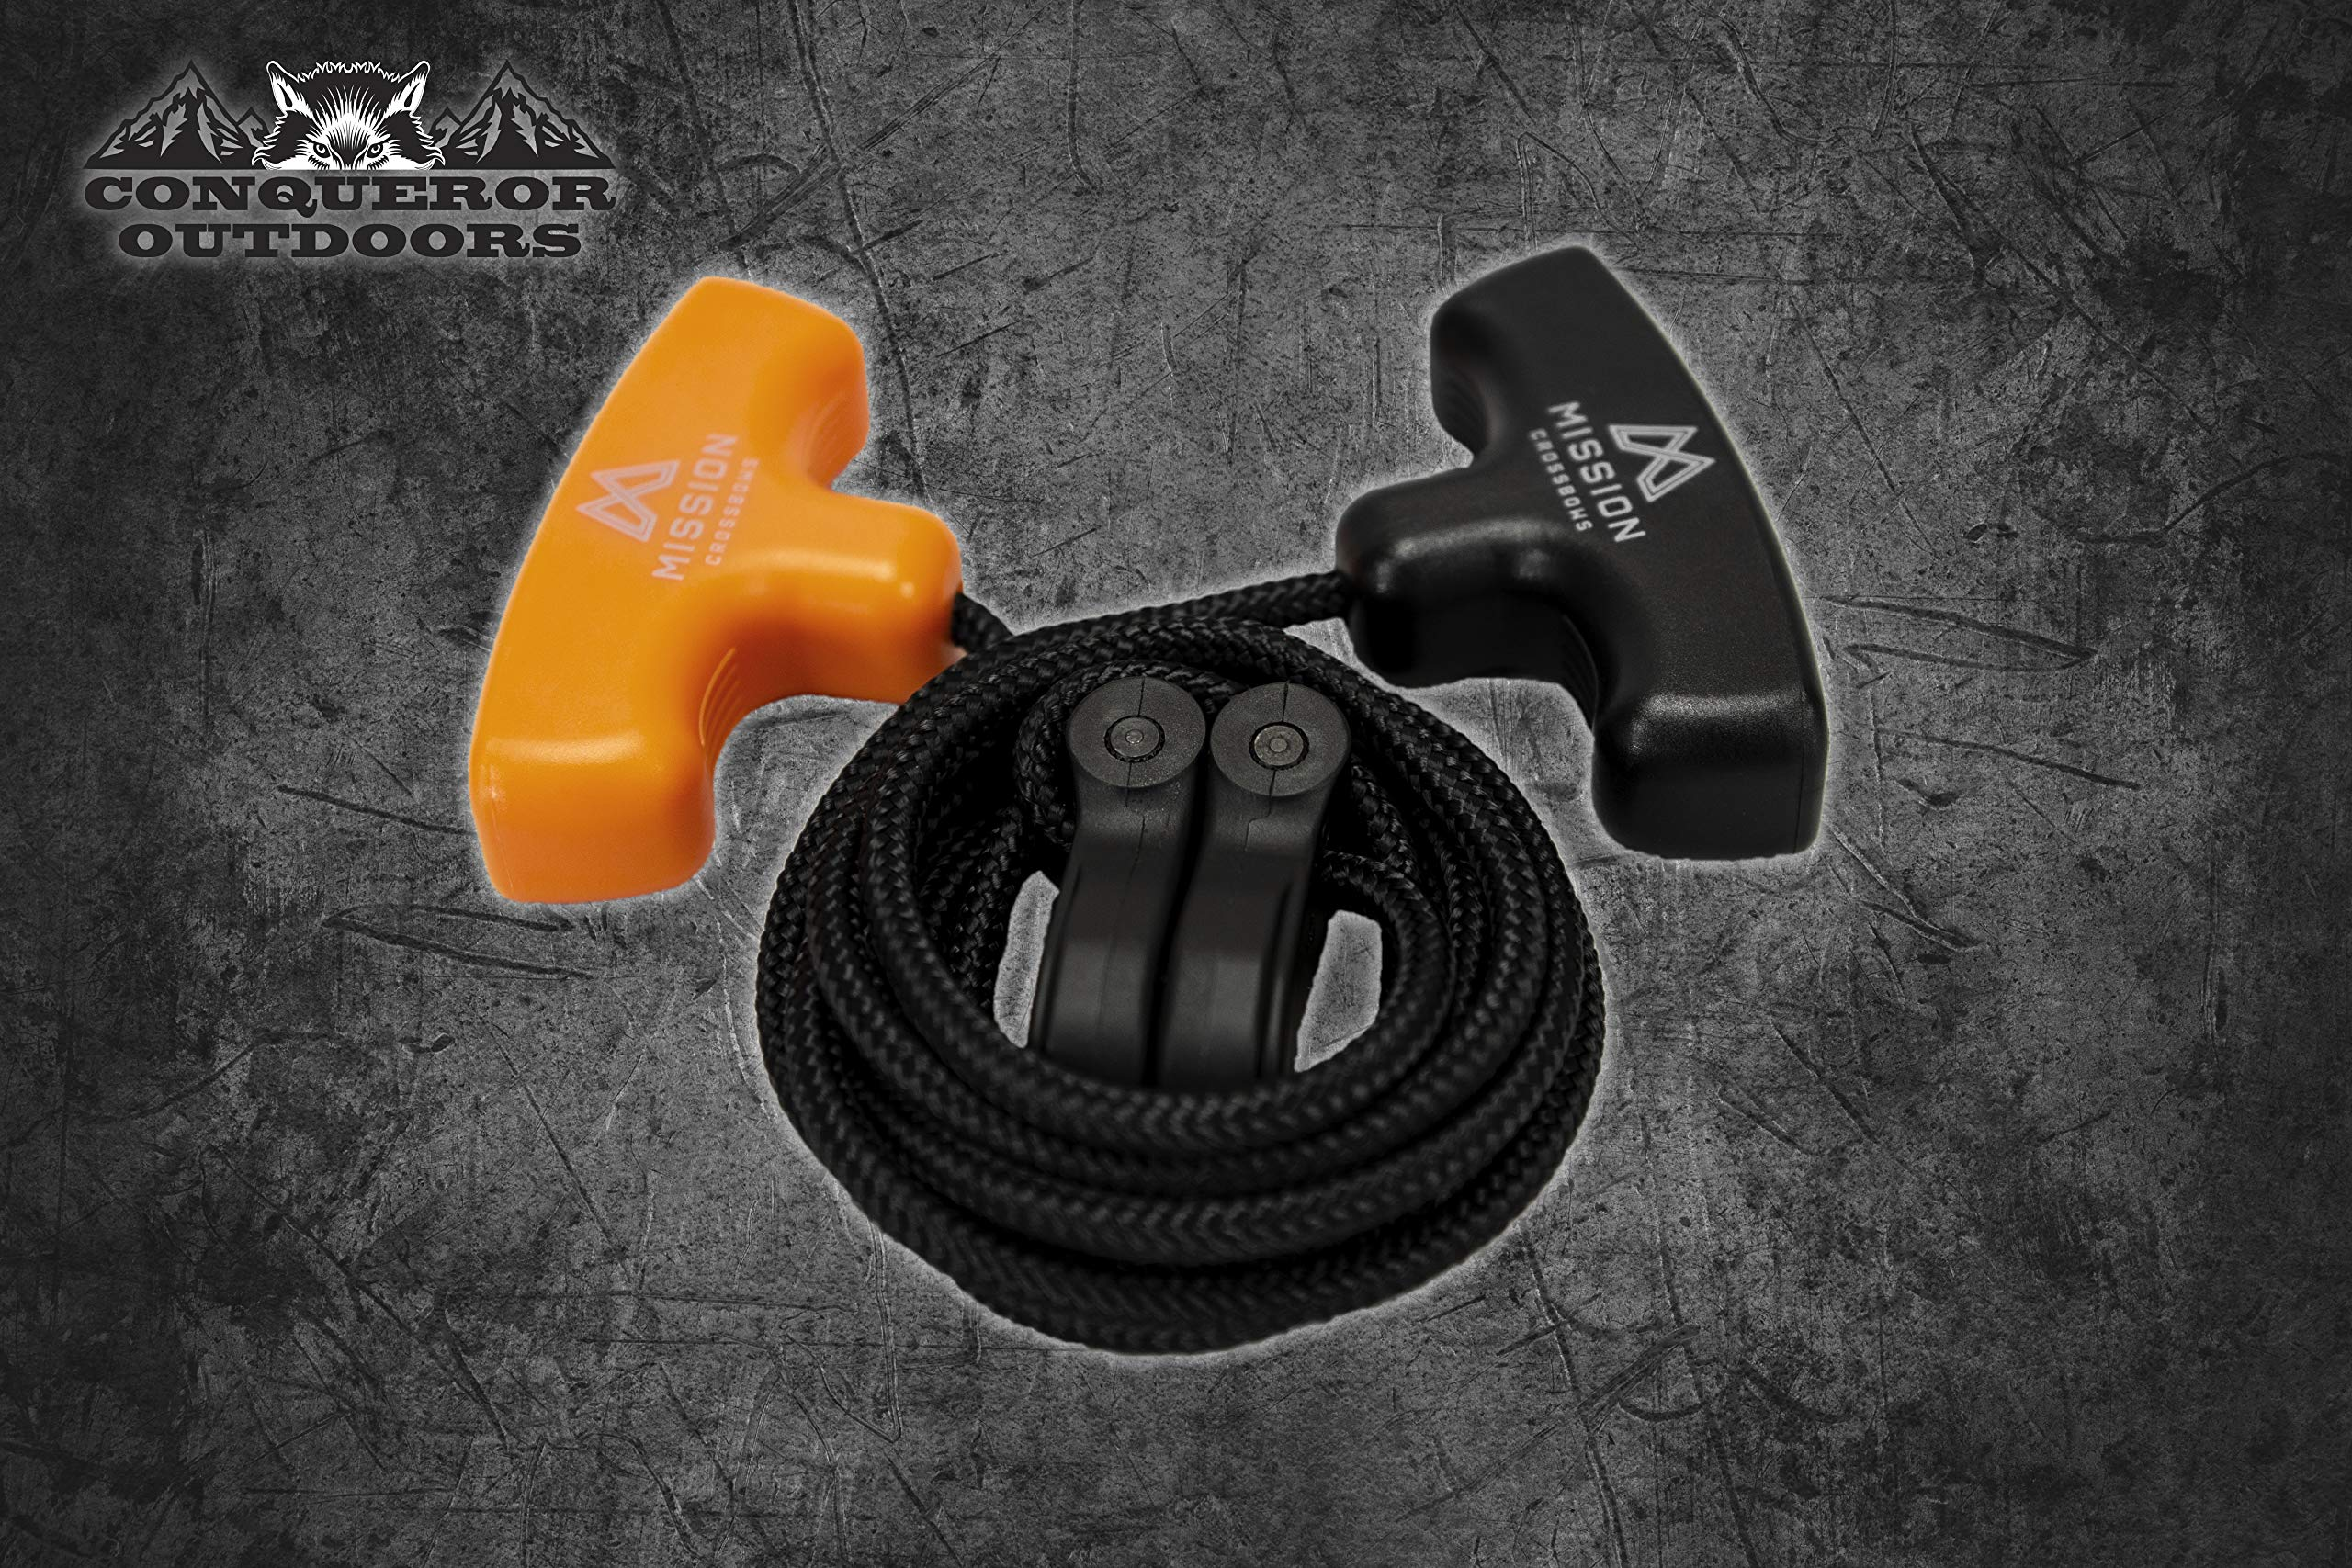 MISSION COCKING AID (ROPE)   80676   CLASSIC CROSSBOW PORTABLE COCKING TOOL   SHOCK ABSORBENT   ABRASION RESISTANT   SMOOTHLY BRAIDED   SAVE 50% EFFORT   T-HANDLES   UNIVERSAL USE   QUICK LOAD FOR ALL